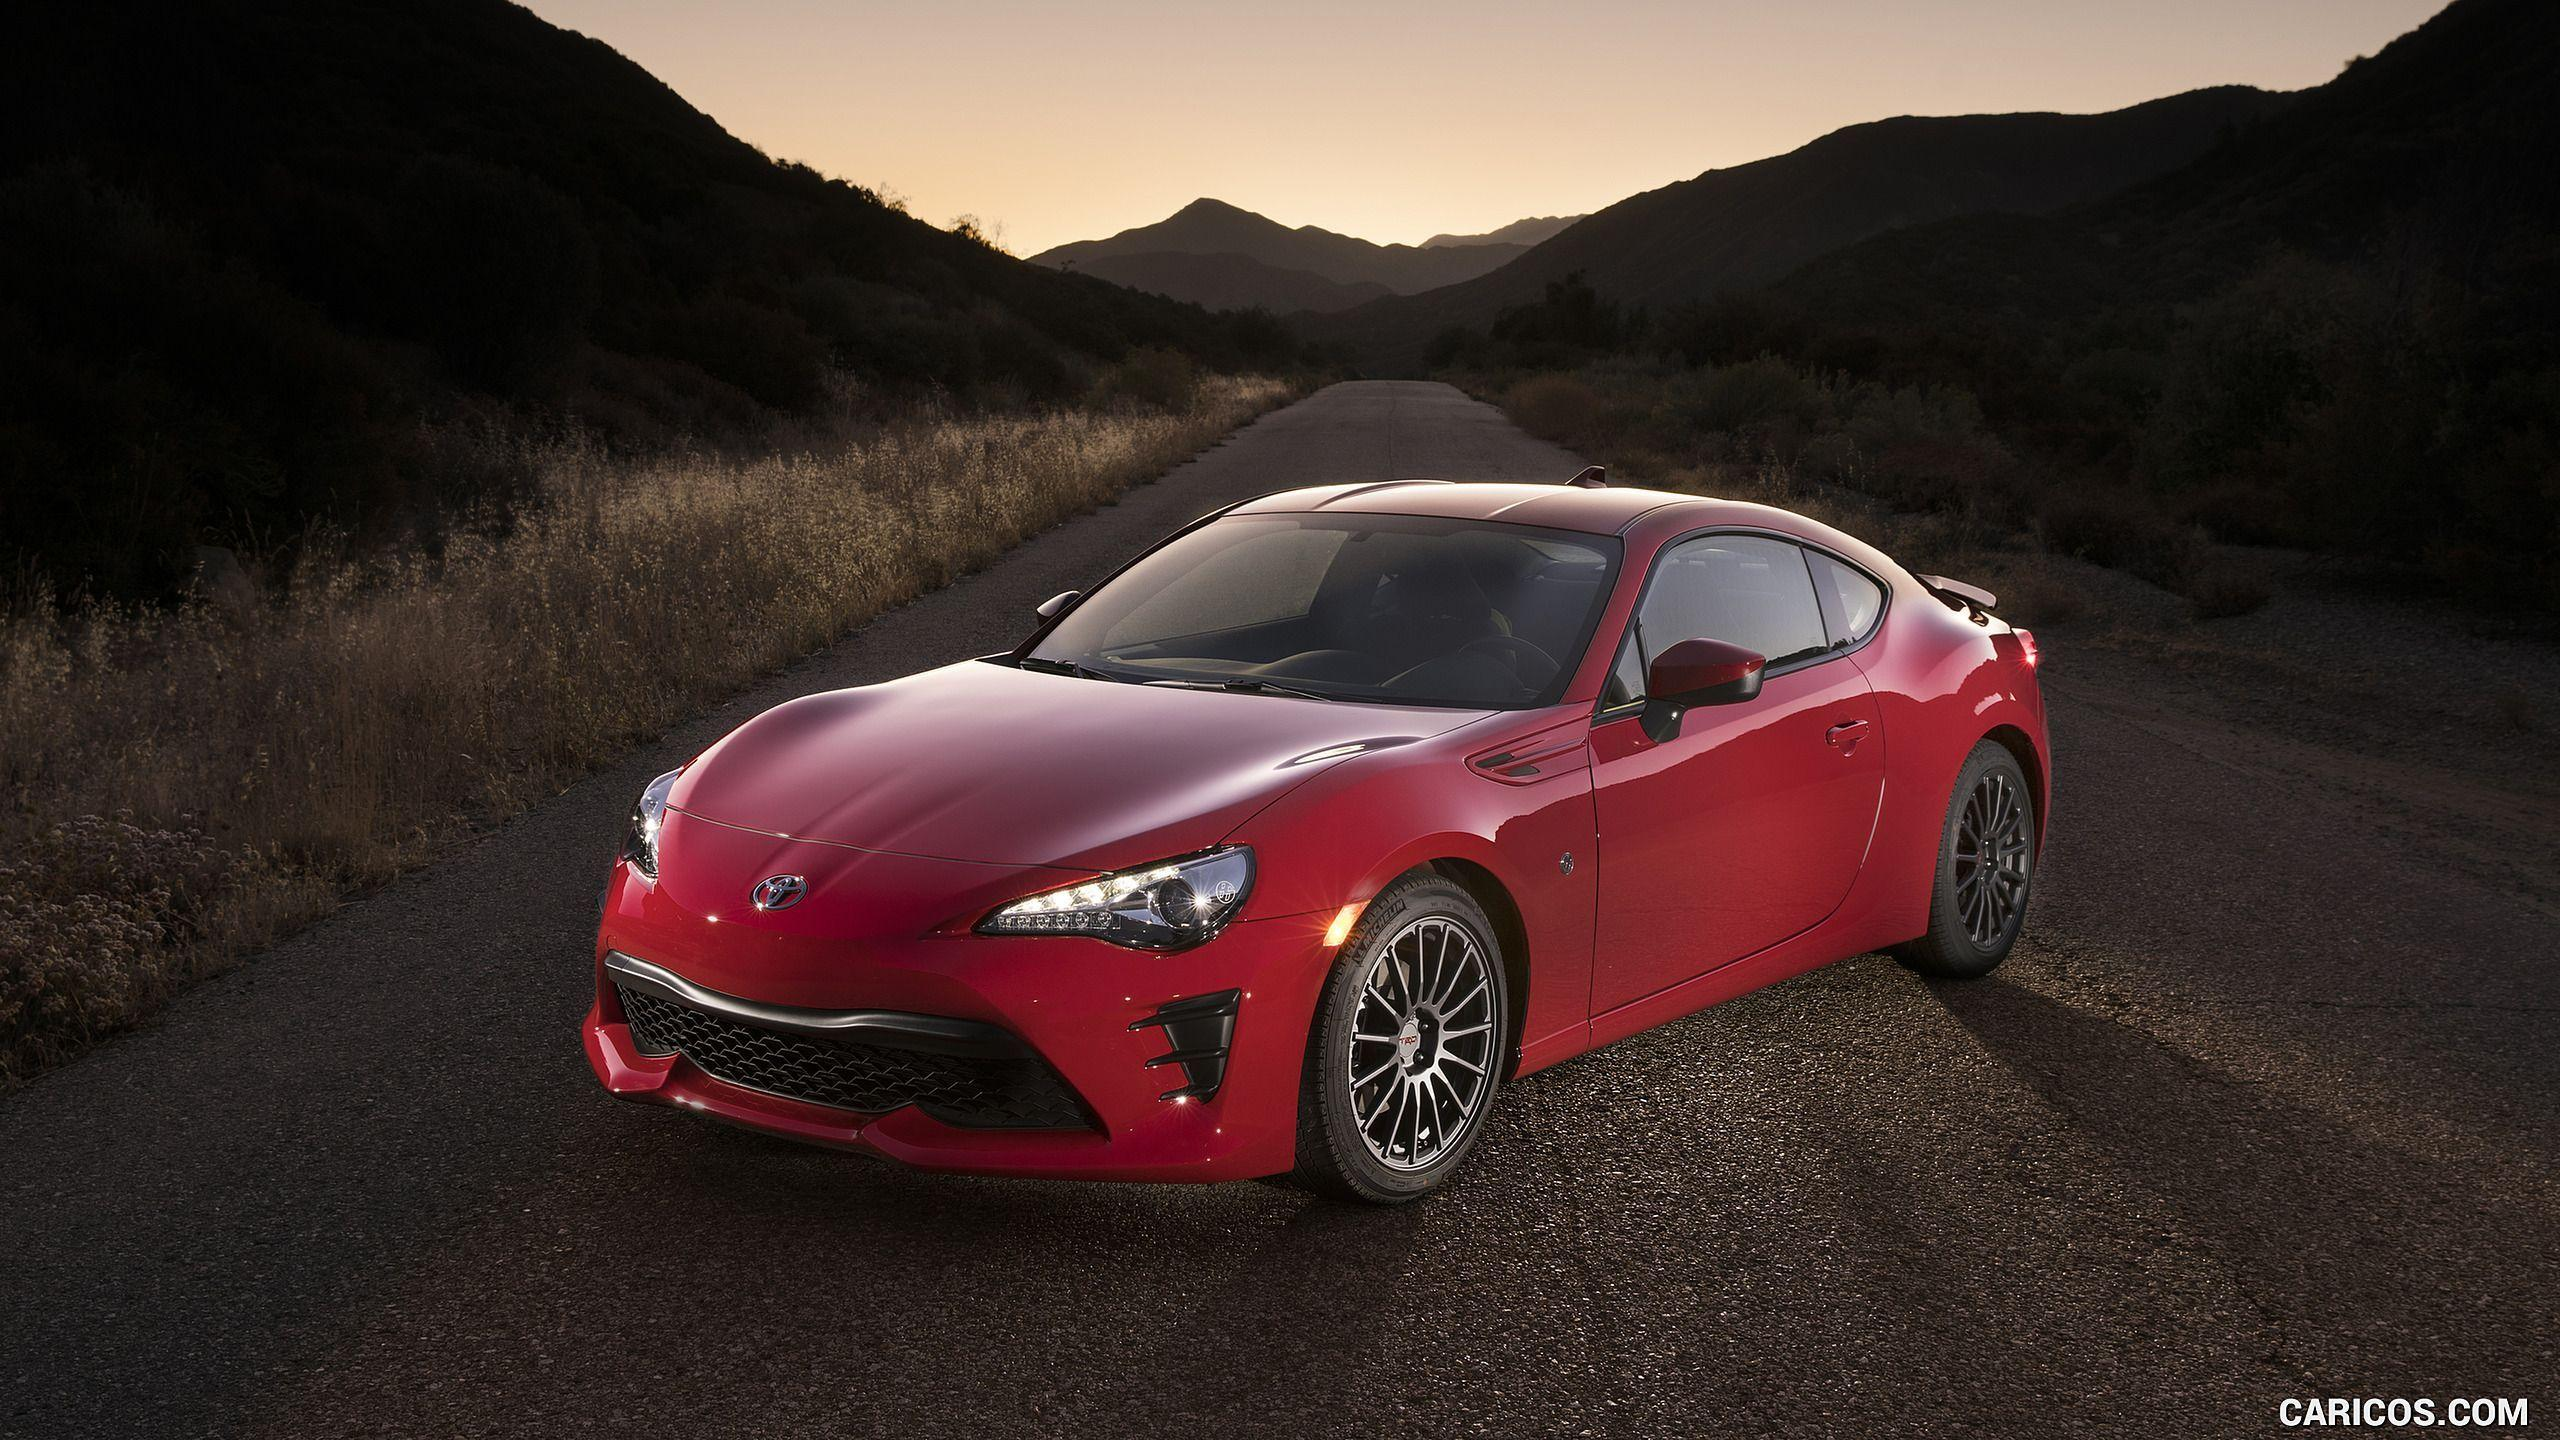 2017 Toyota 86 Red with TRD Accessories